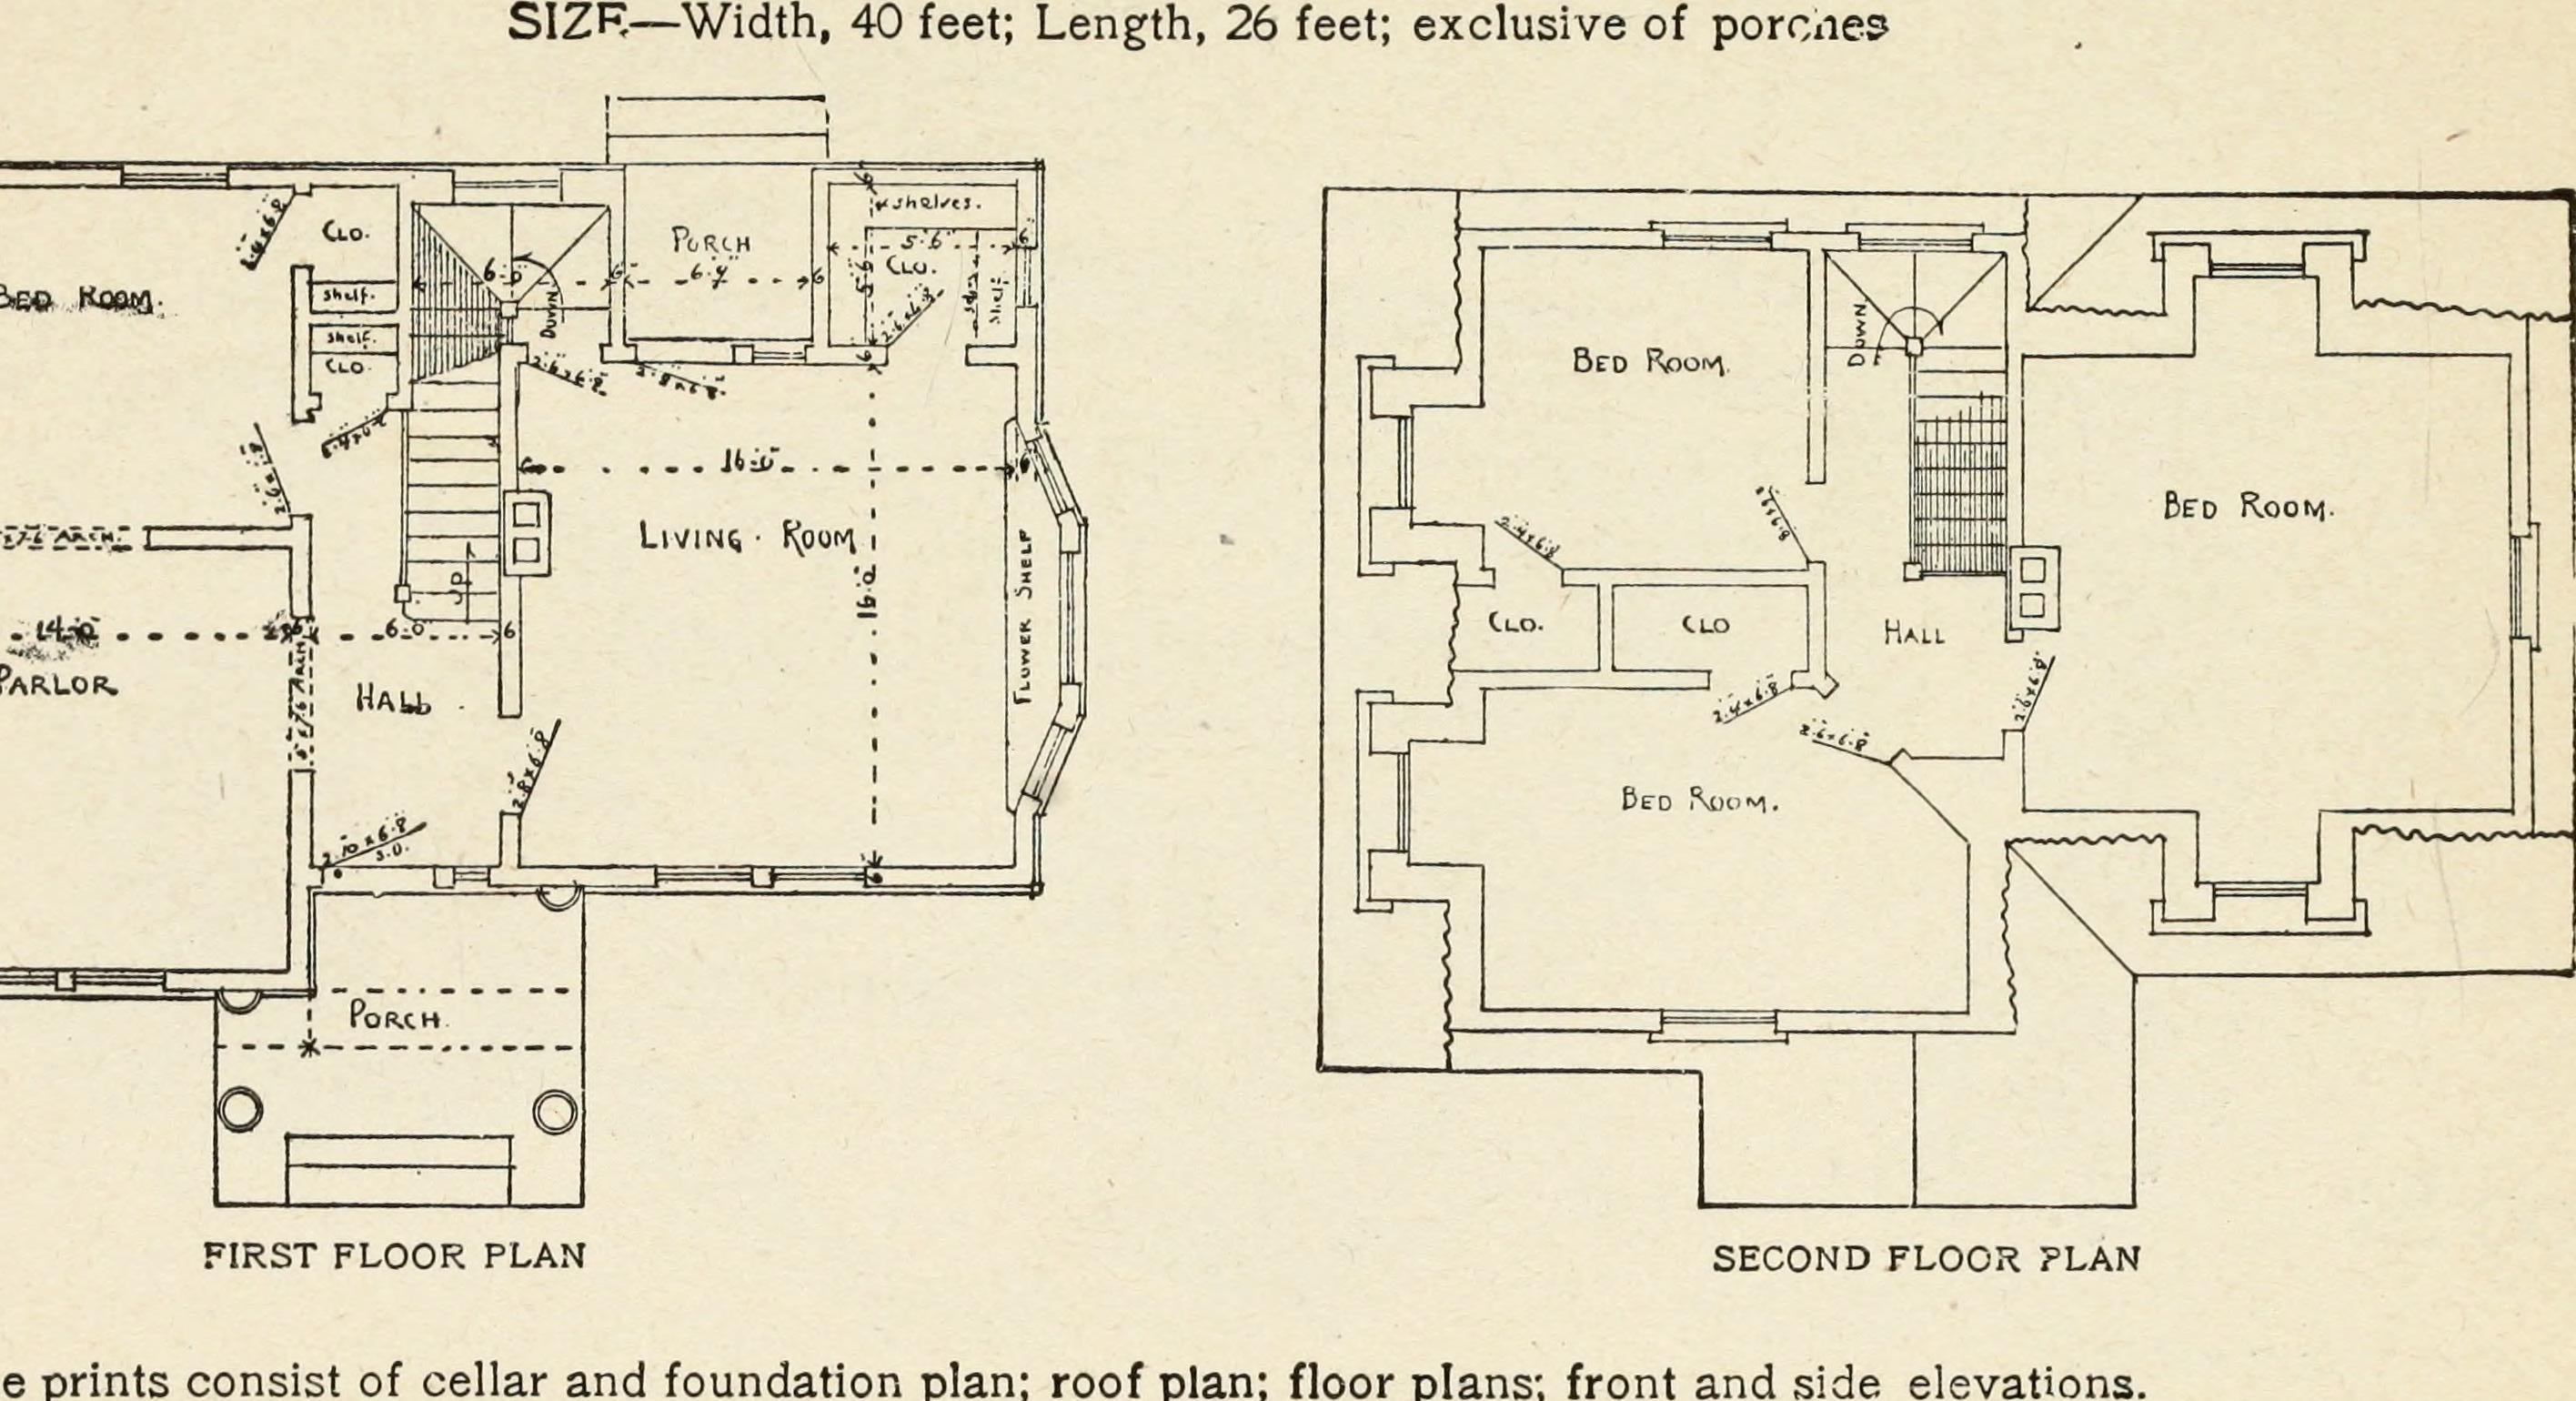 File hodgson 39 s low cost american homes perspective views for American home floor plans